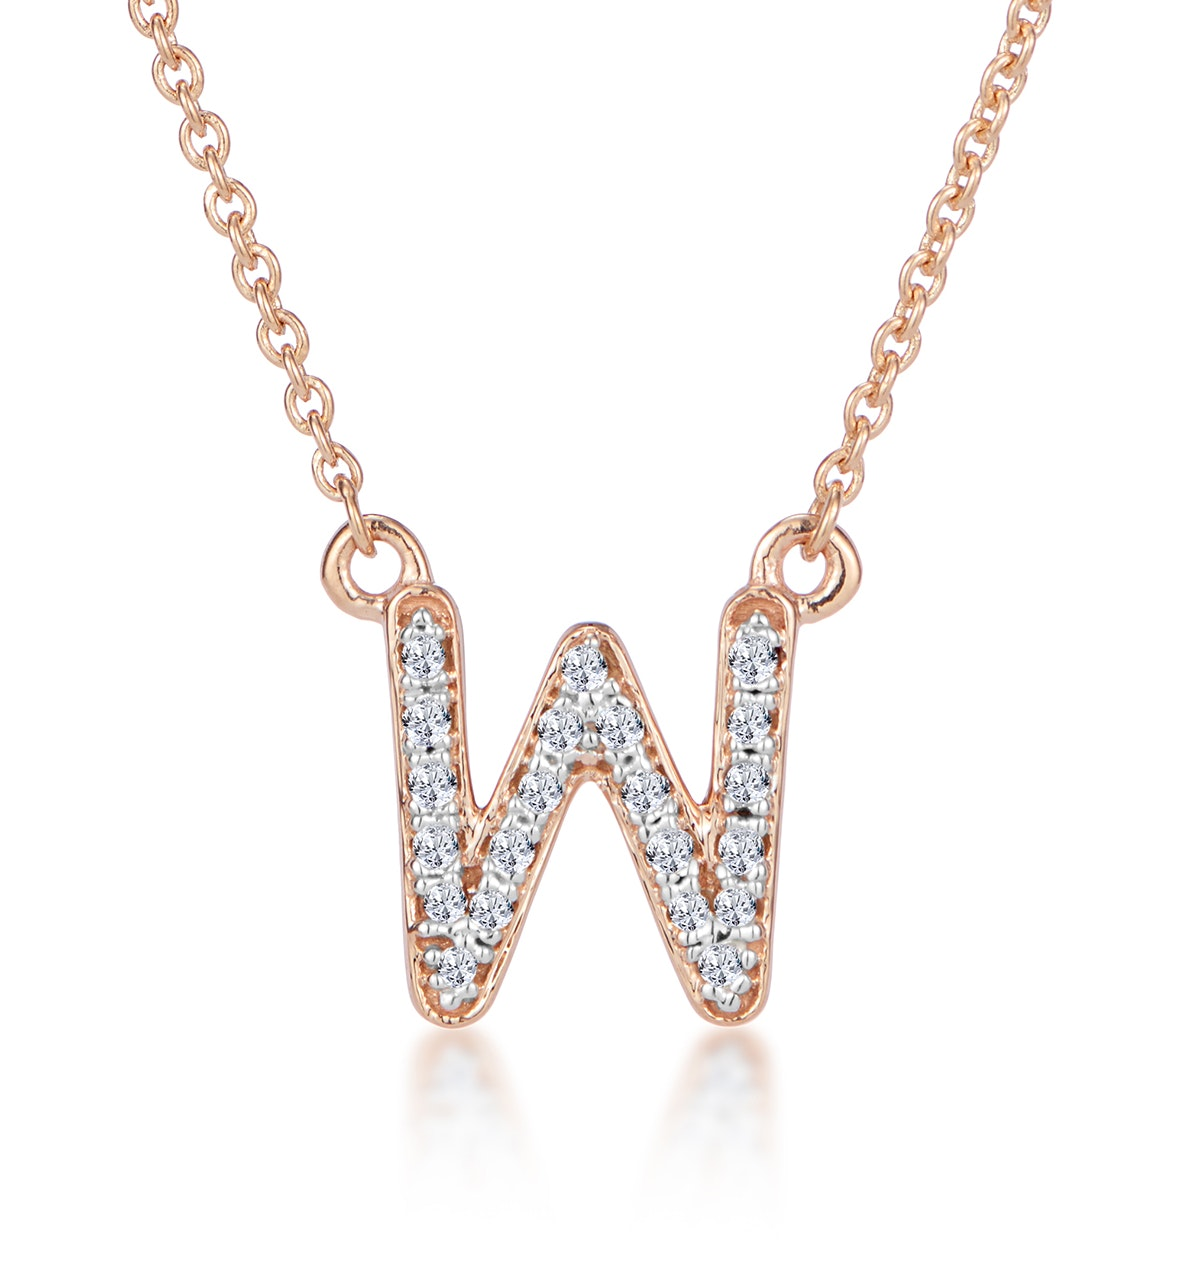 Initial 'W' Necklace Diamond Encrusted Pave Set in 9K Rose Gold